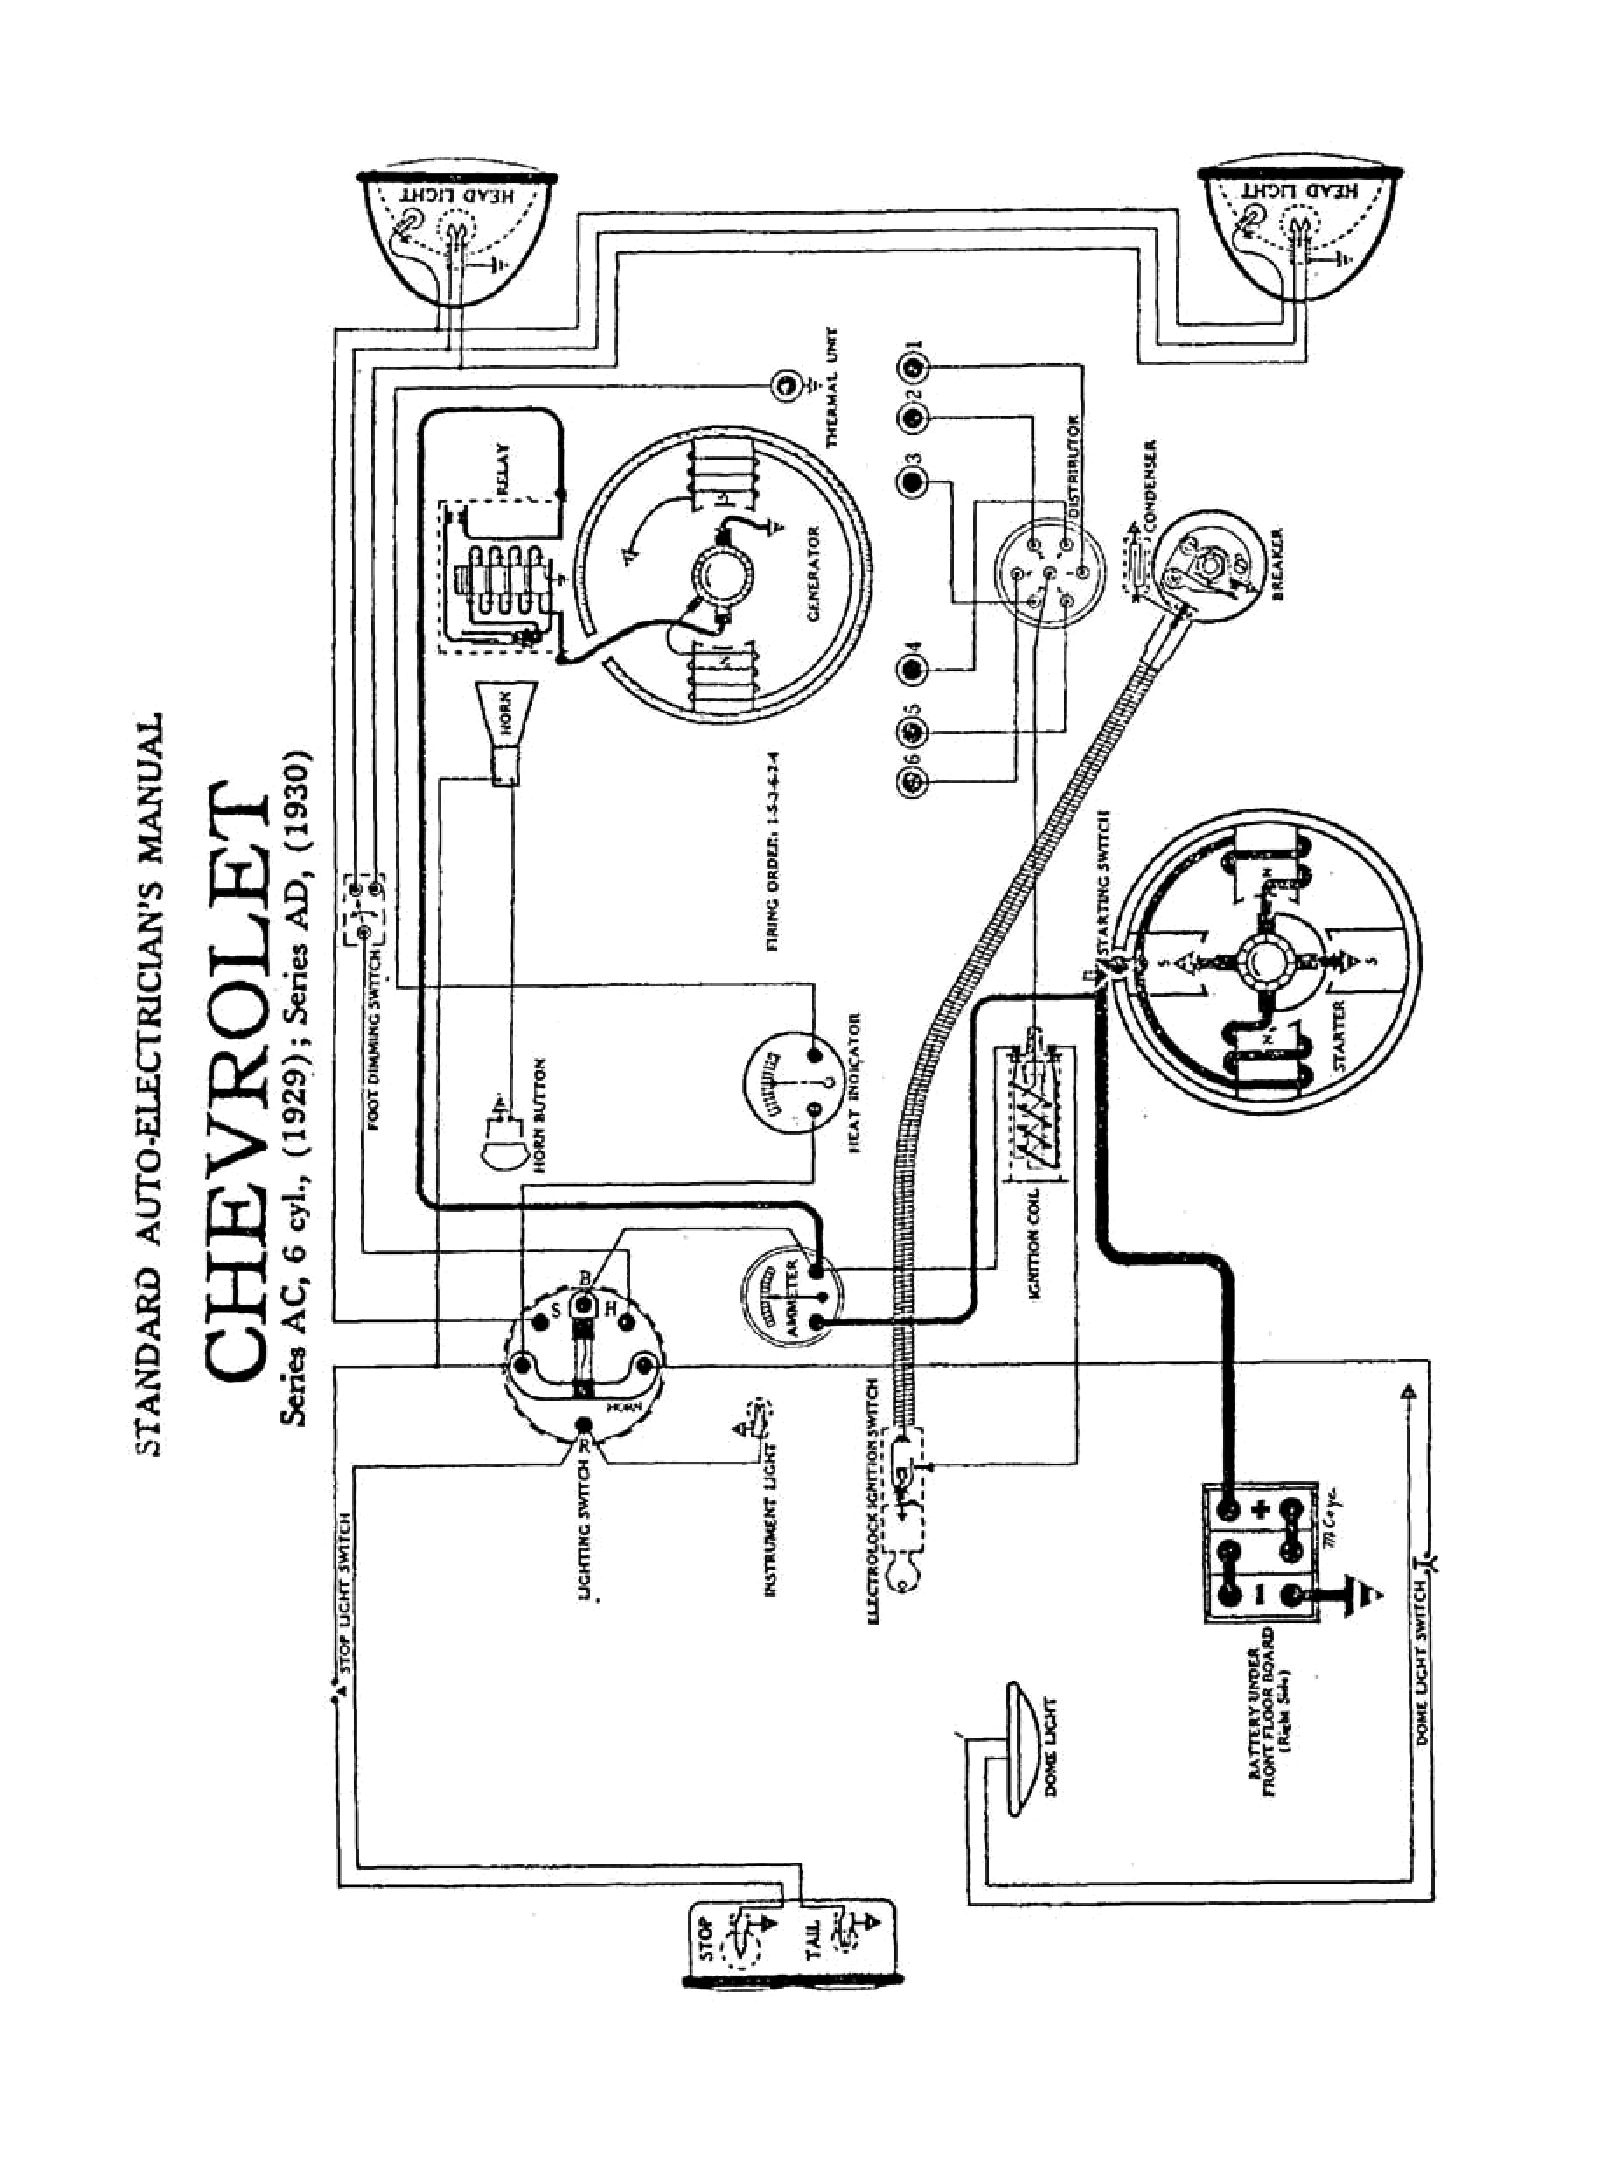 Wiring Diagram Ford Trocter In 1942 - Wiring Diagram Data - Ford Tractor Ignition Switch Wiring Diagram